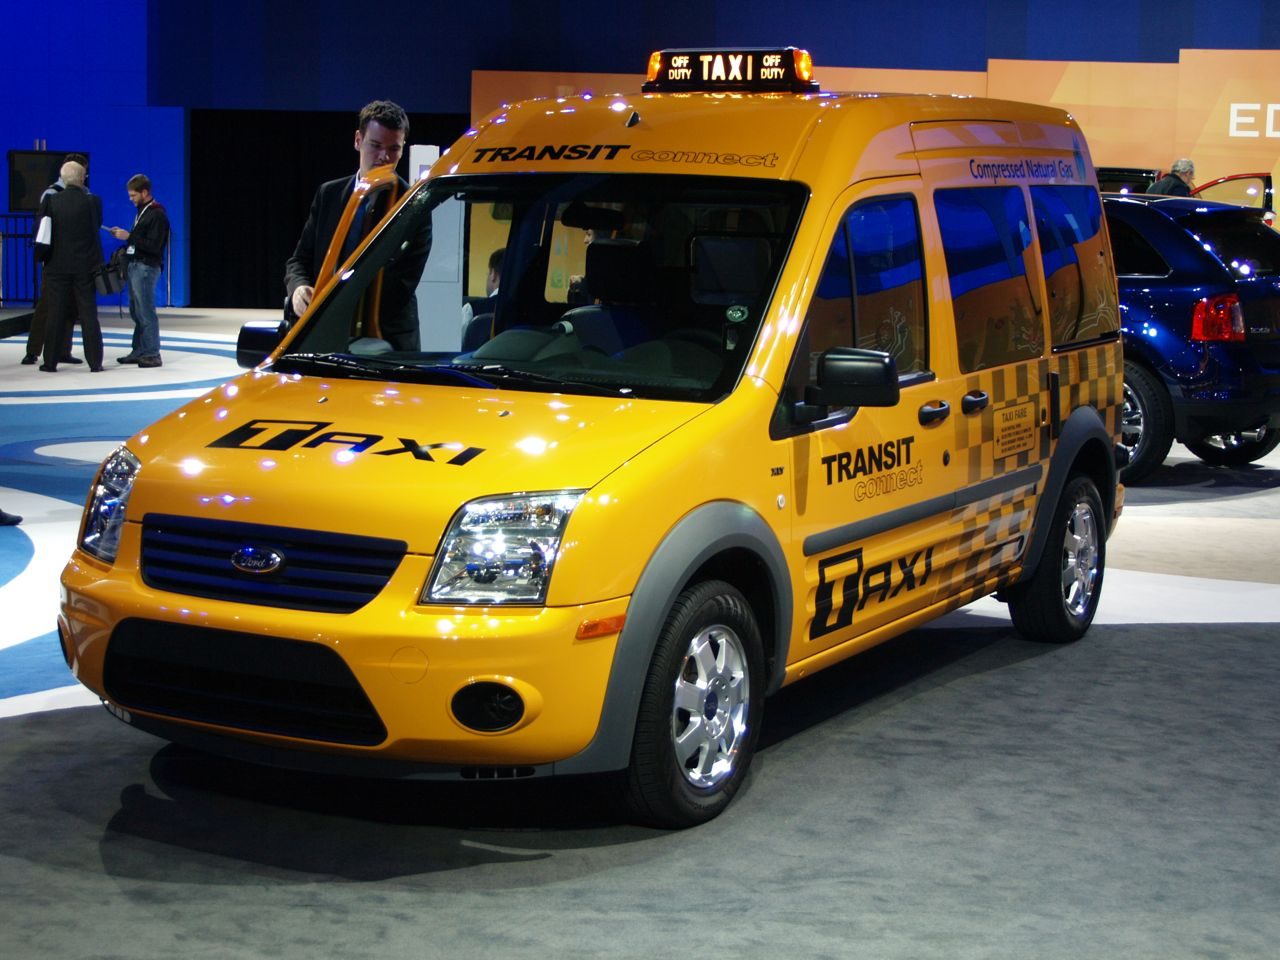 2017 Ford Transit Connect Taxi photo - 1